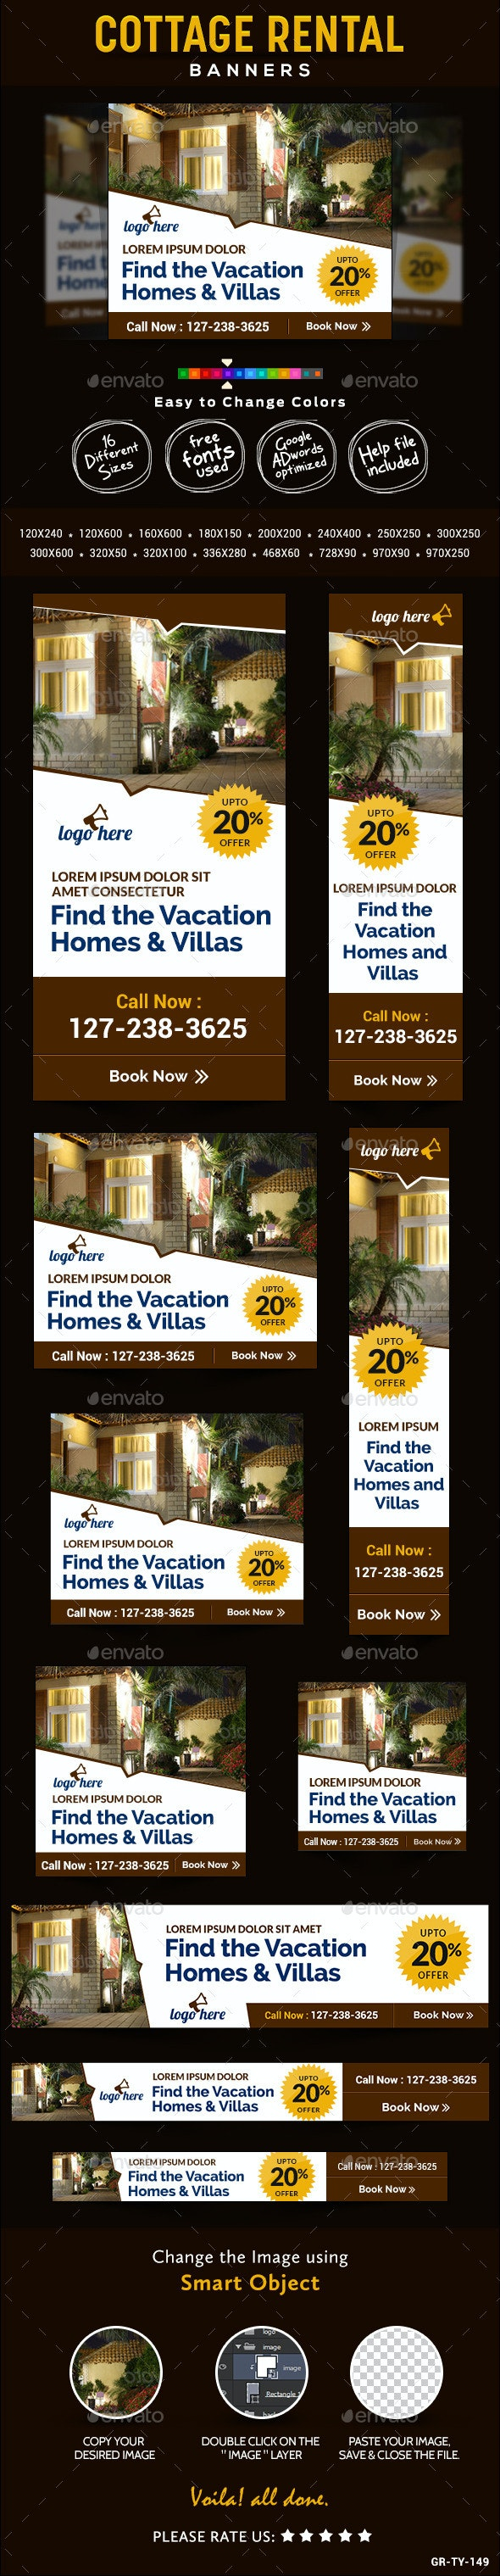 Cottage Rental Banners - Banners & Ads Web Elements